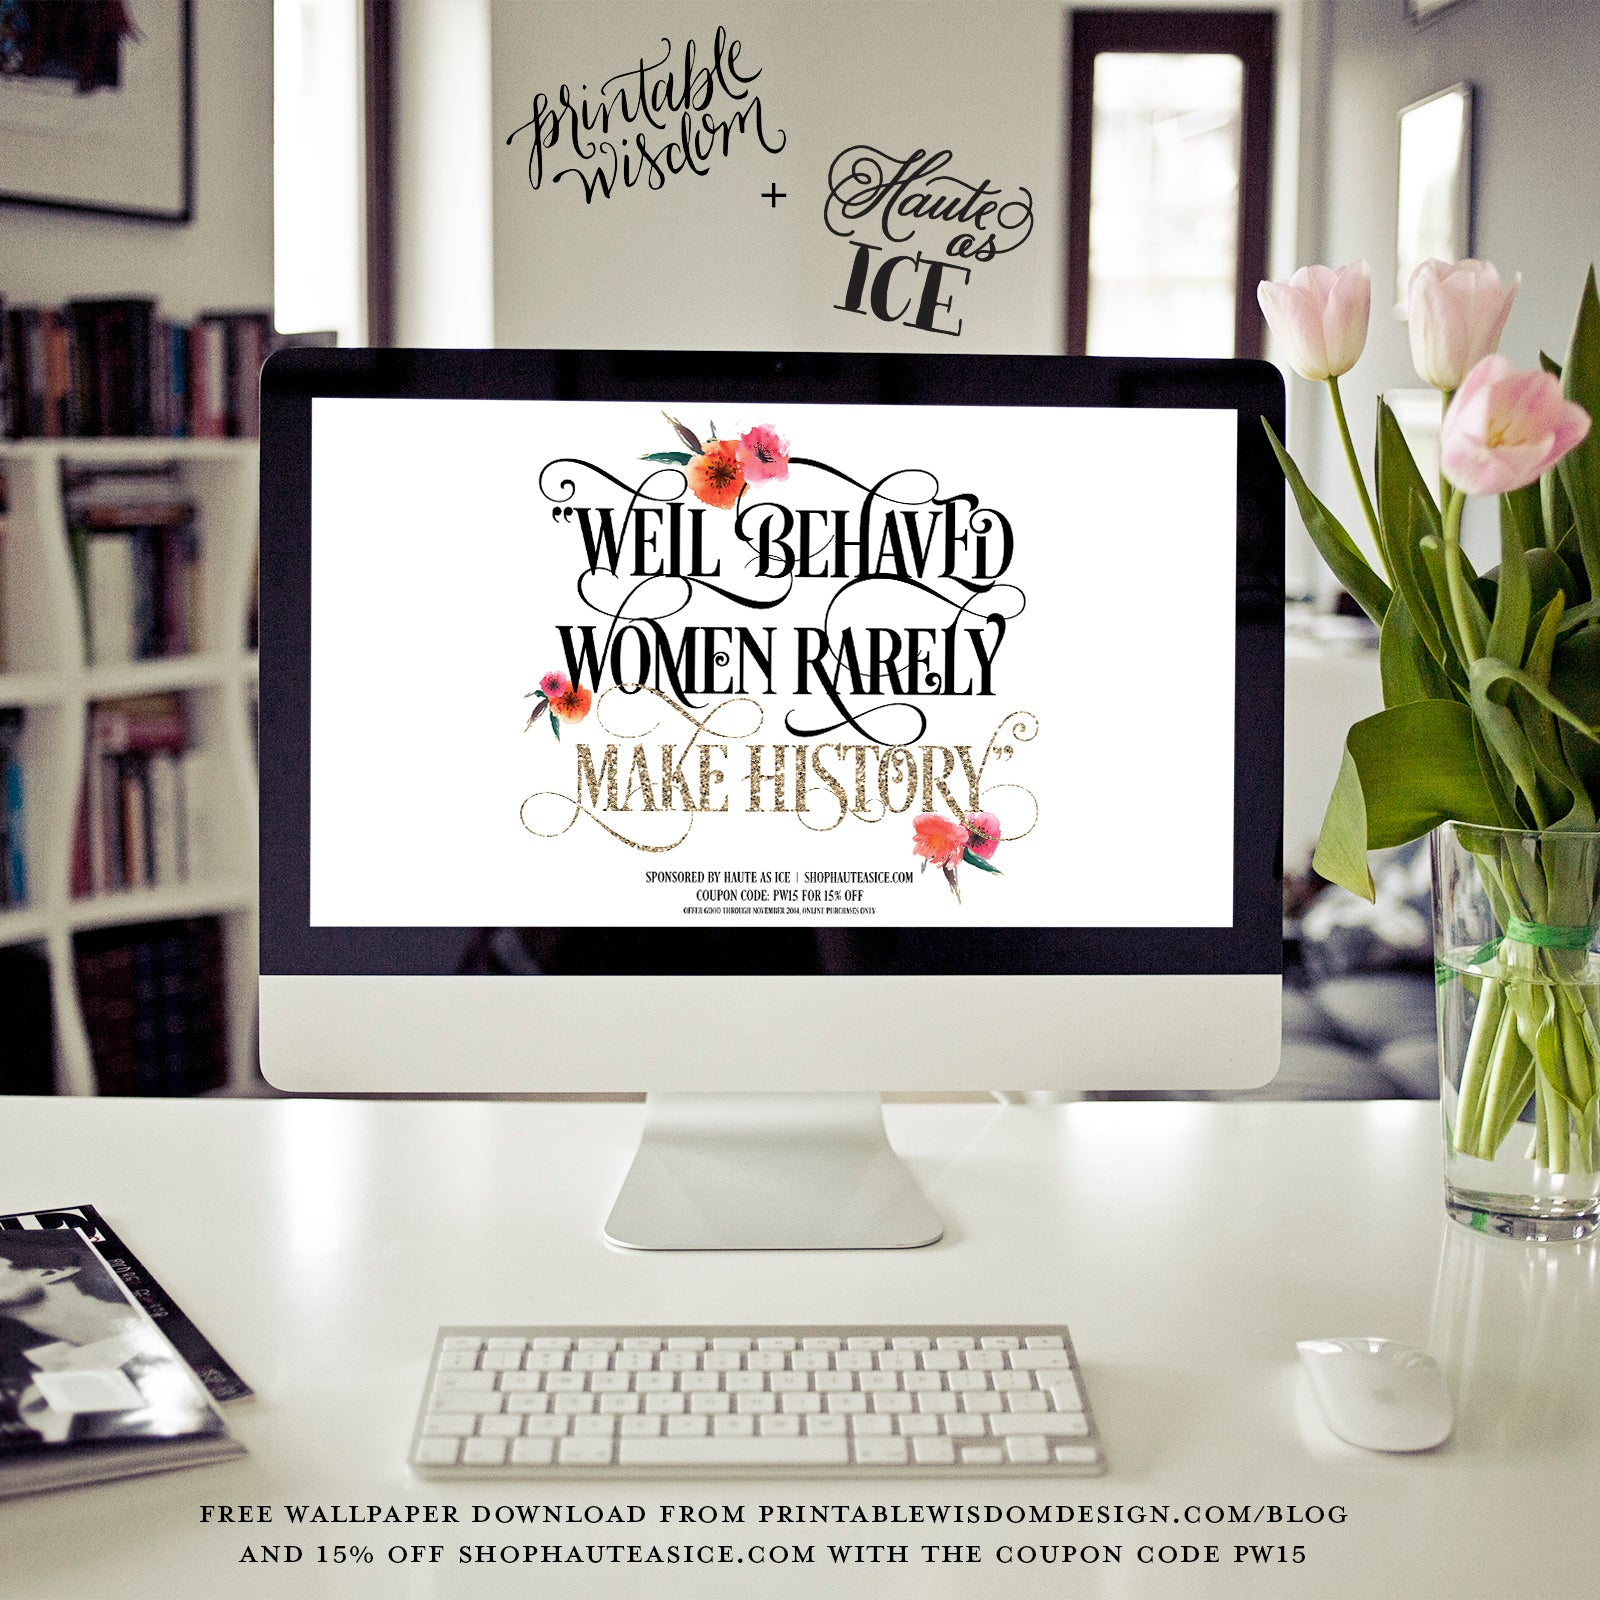 Printable wisdom free wallpaper and background - coupon code for Haute as Ice